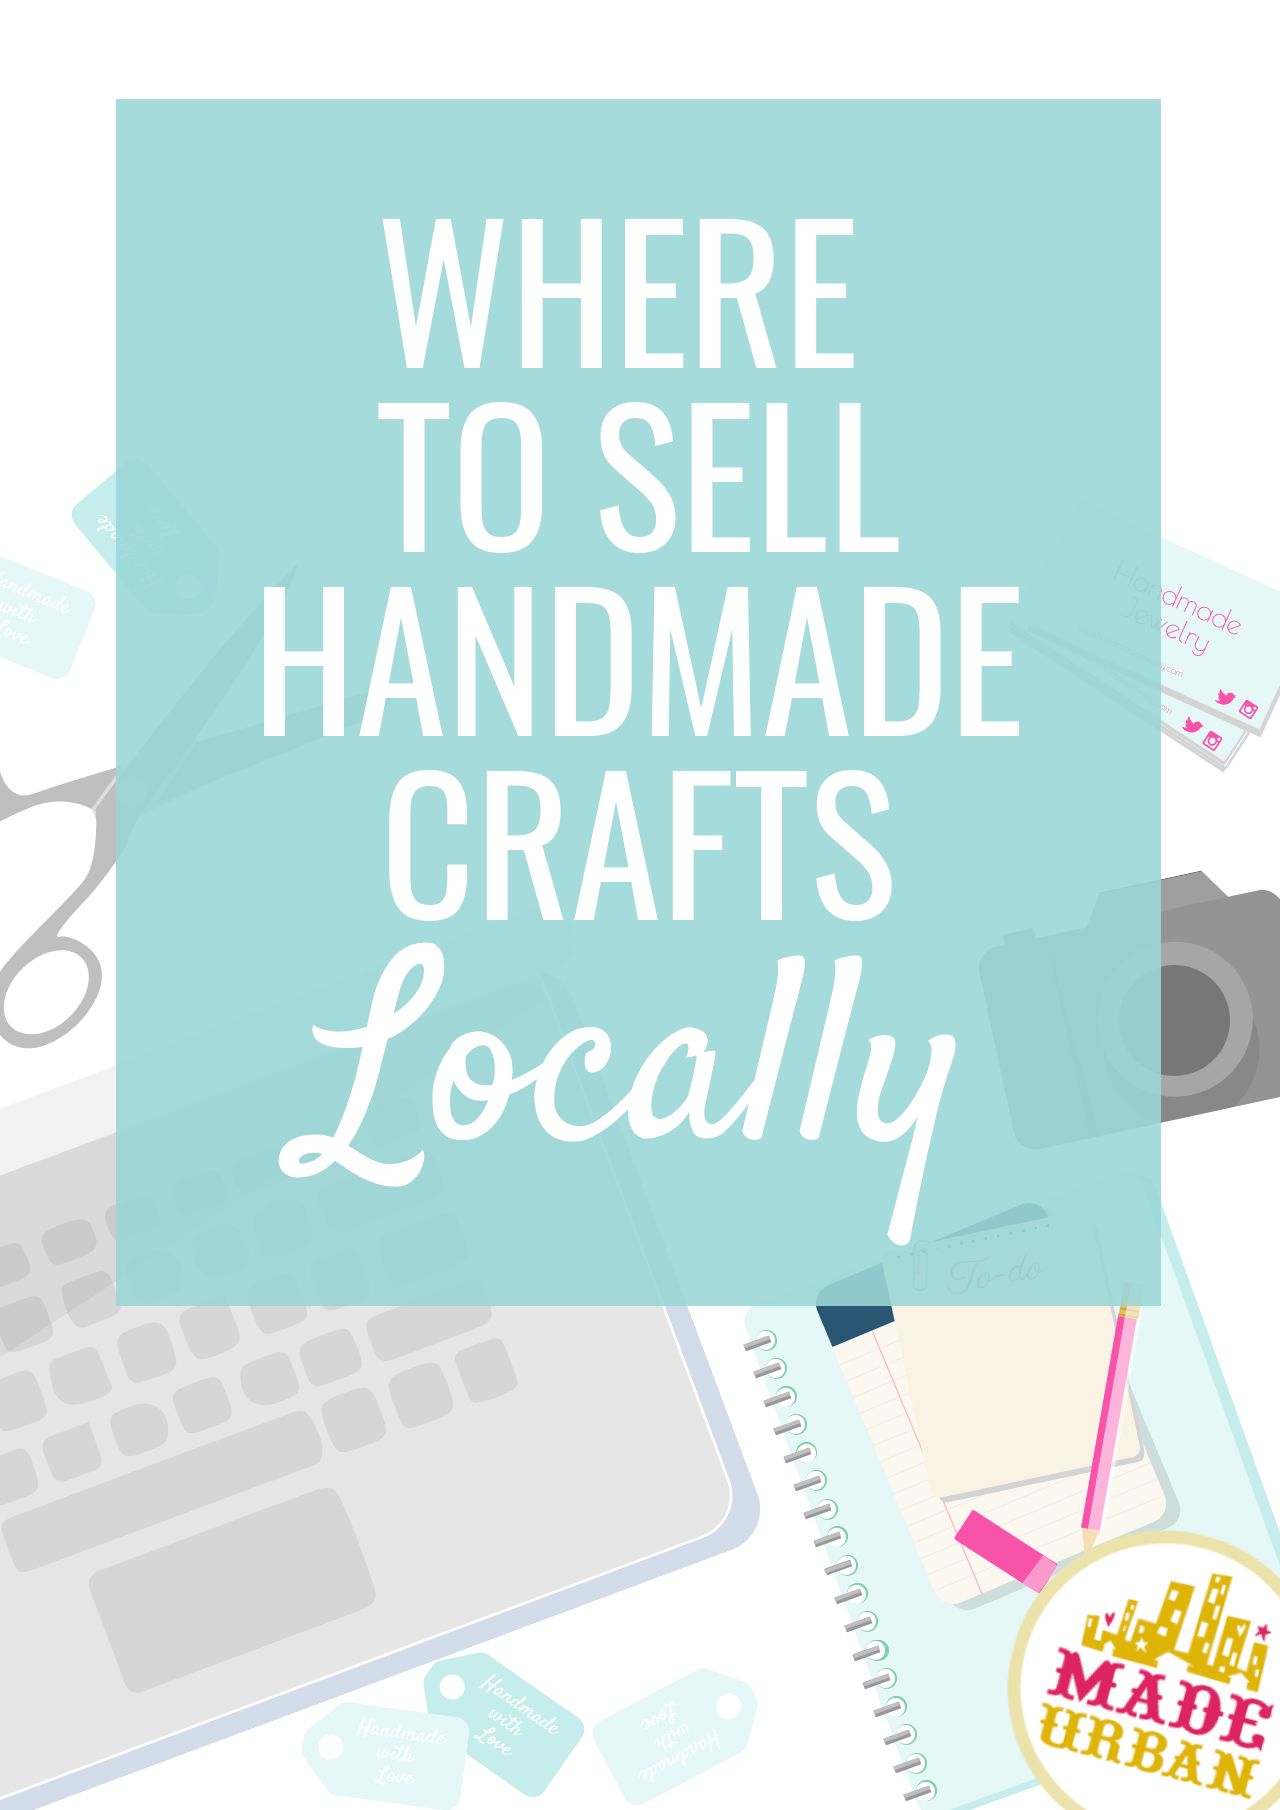 There are many perks to selling handmade crafts locally and although you're limiting the locations to sell, you're not limiting your options.